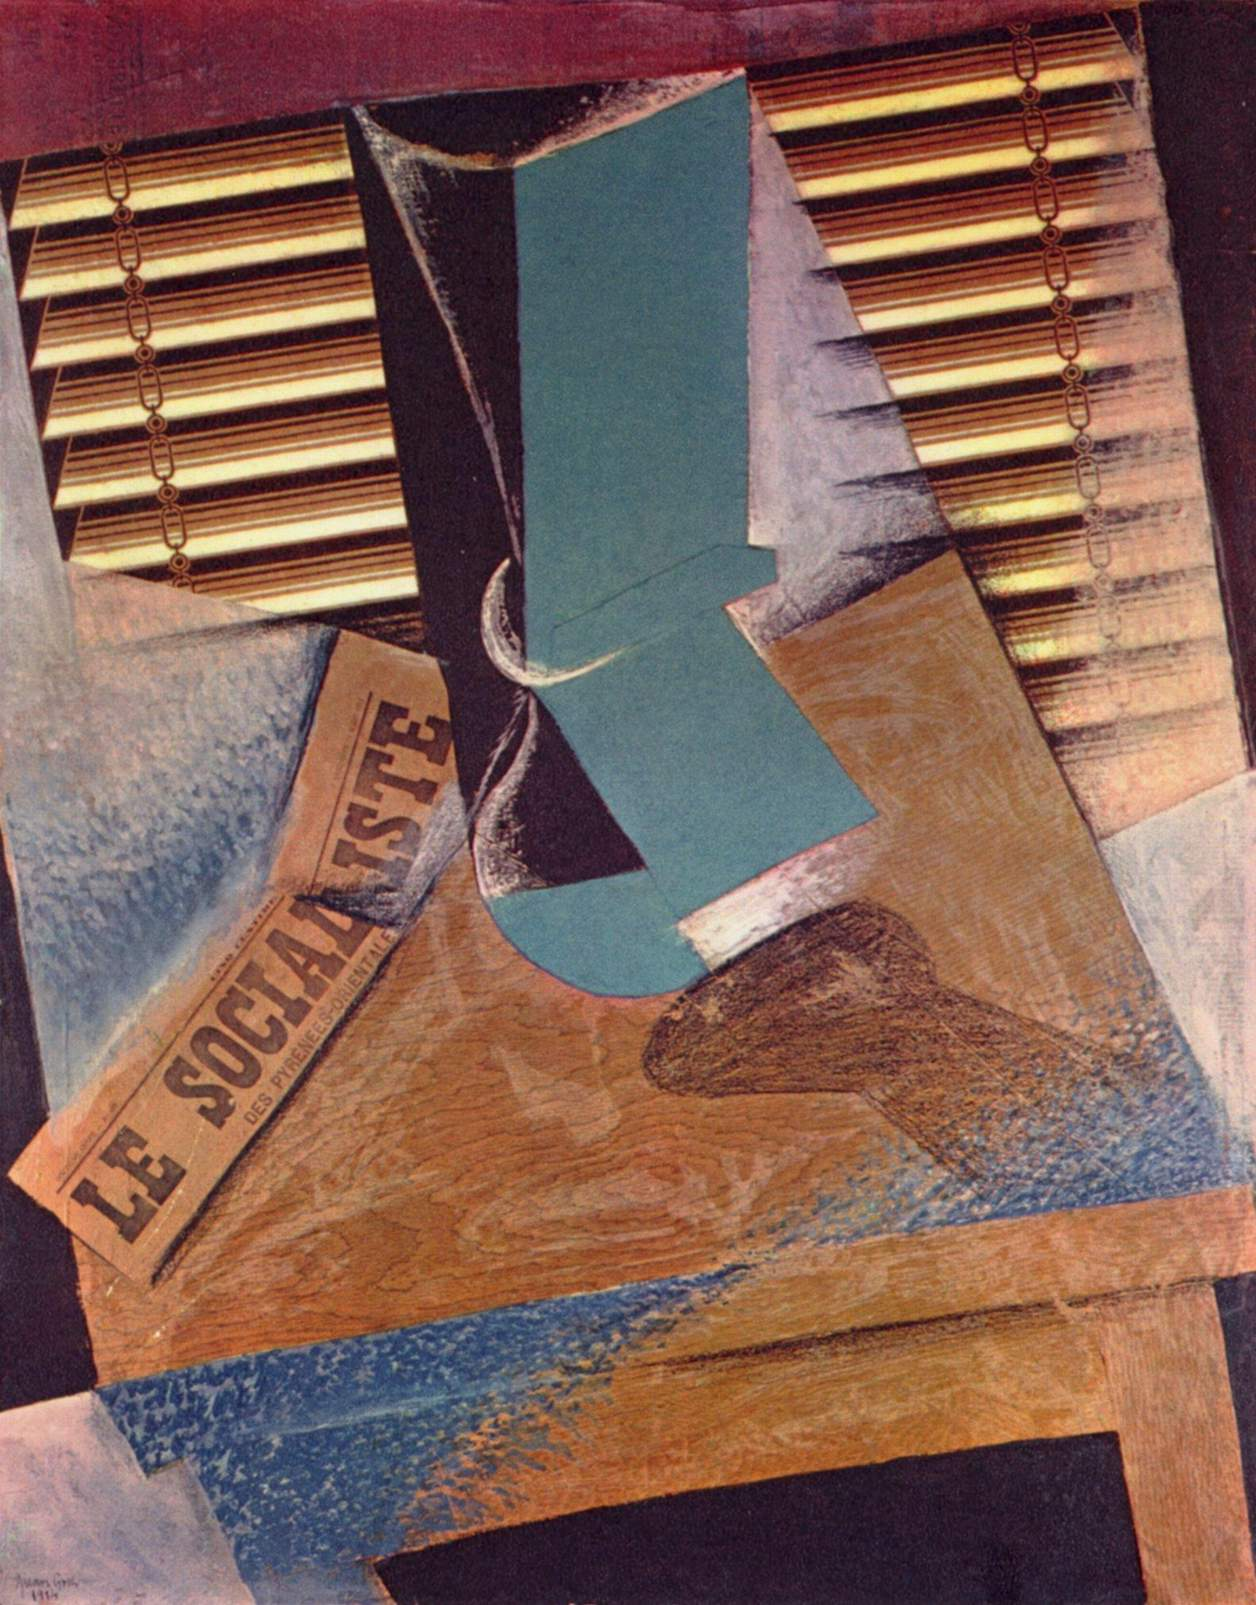 La jalousie, collage de Juan Gris